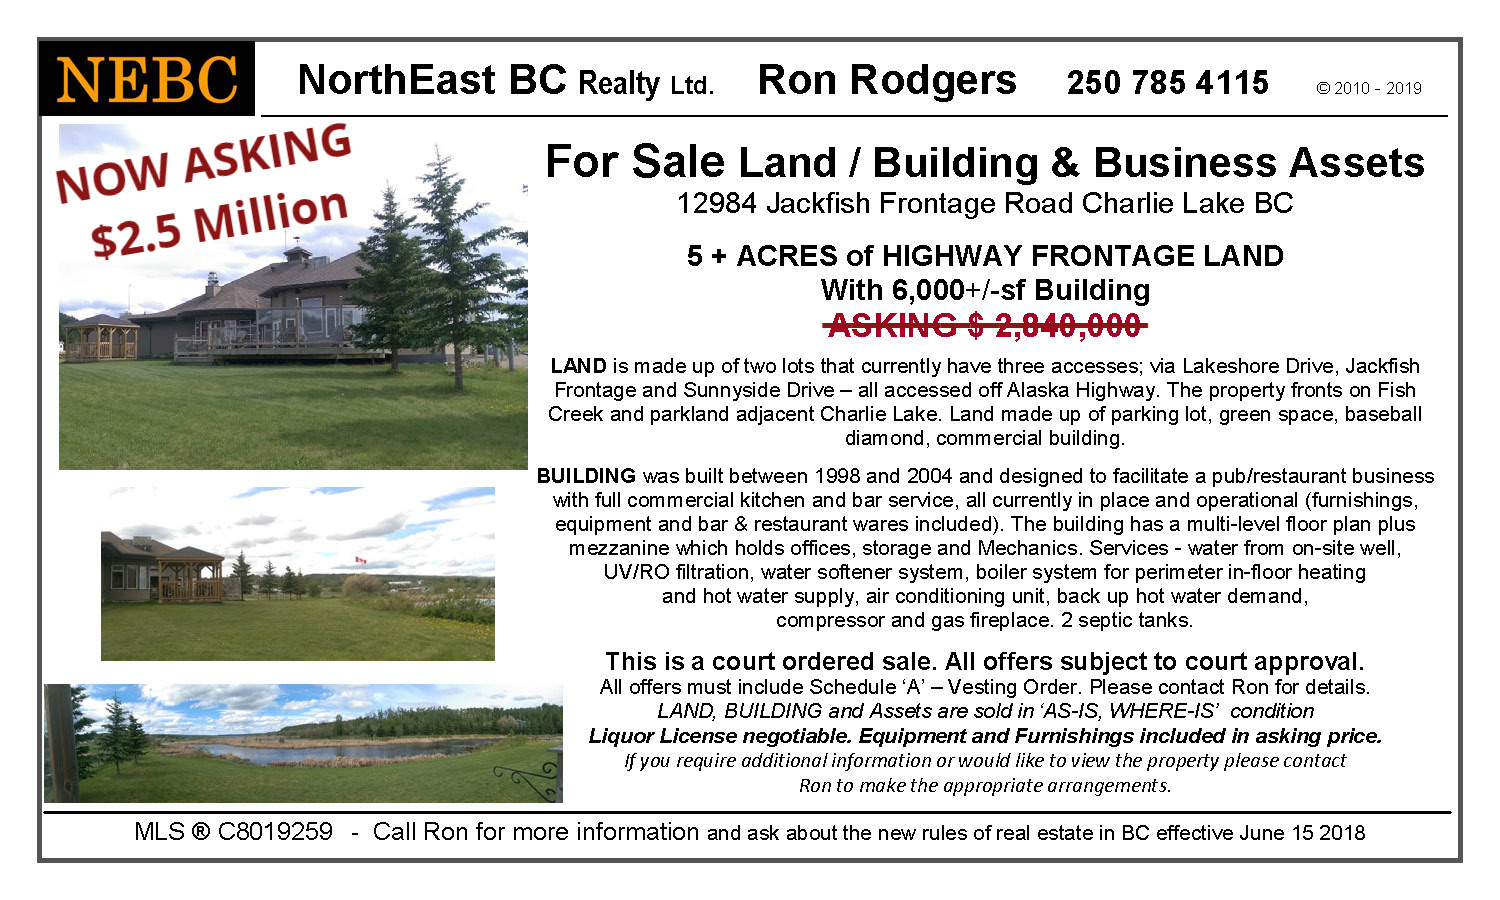 NorthEast BC Realty - Ron Rodgers - FOR SALE